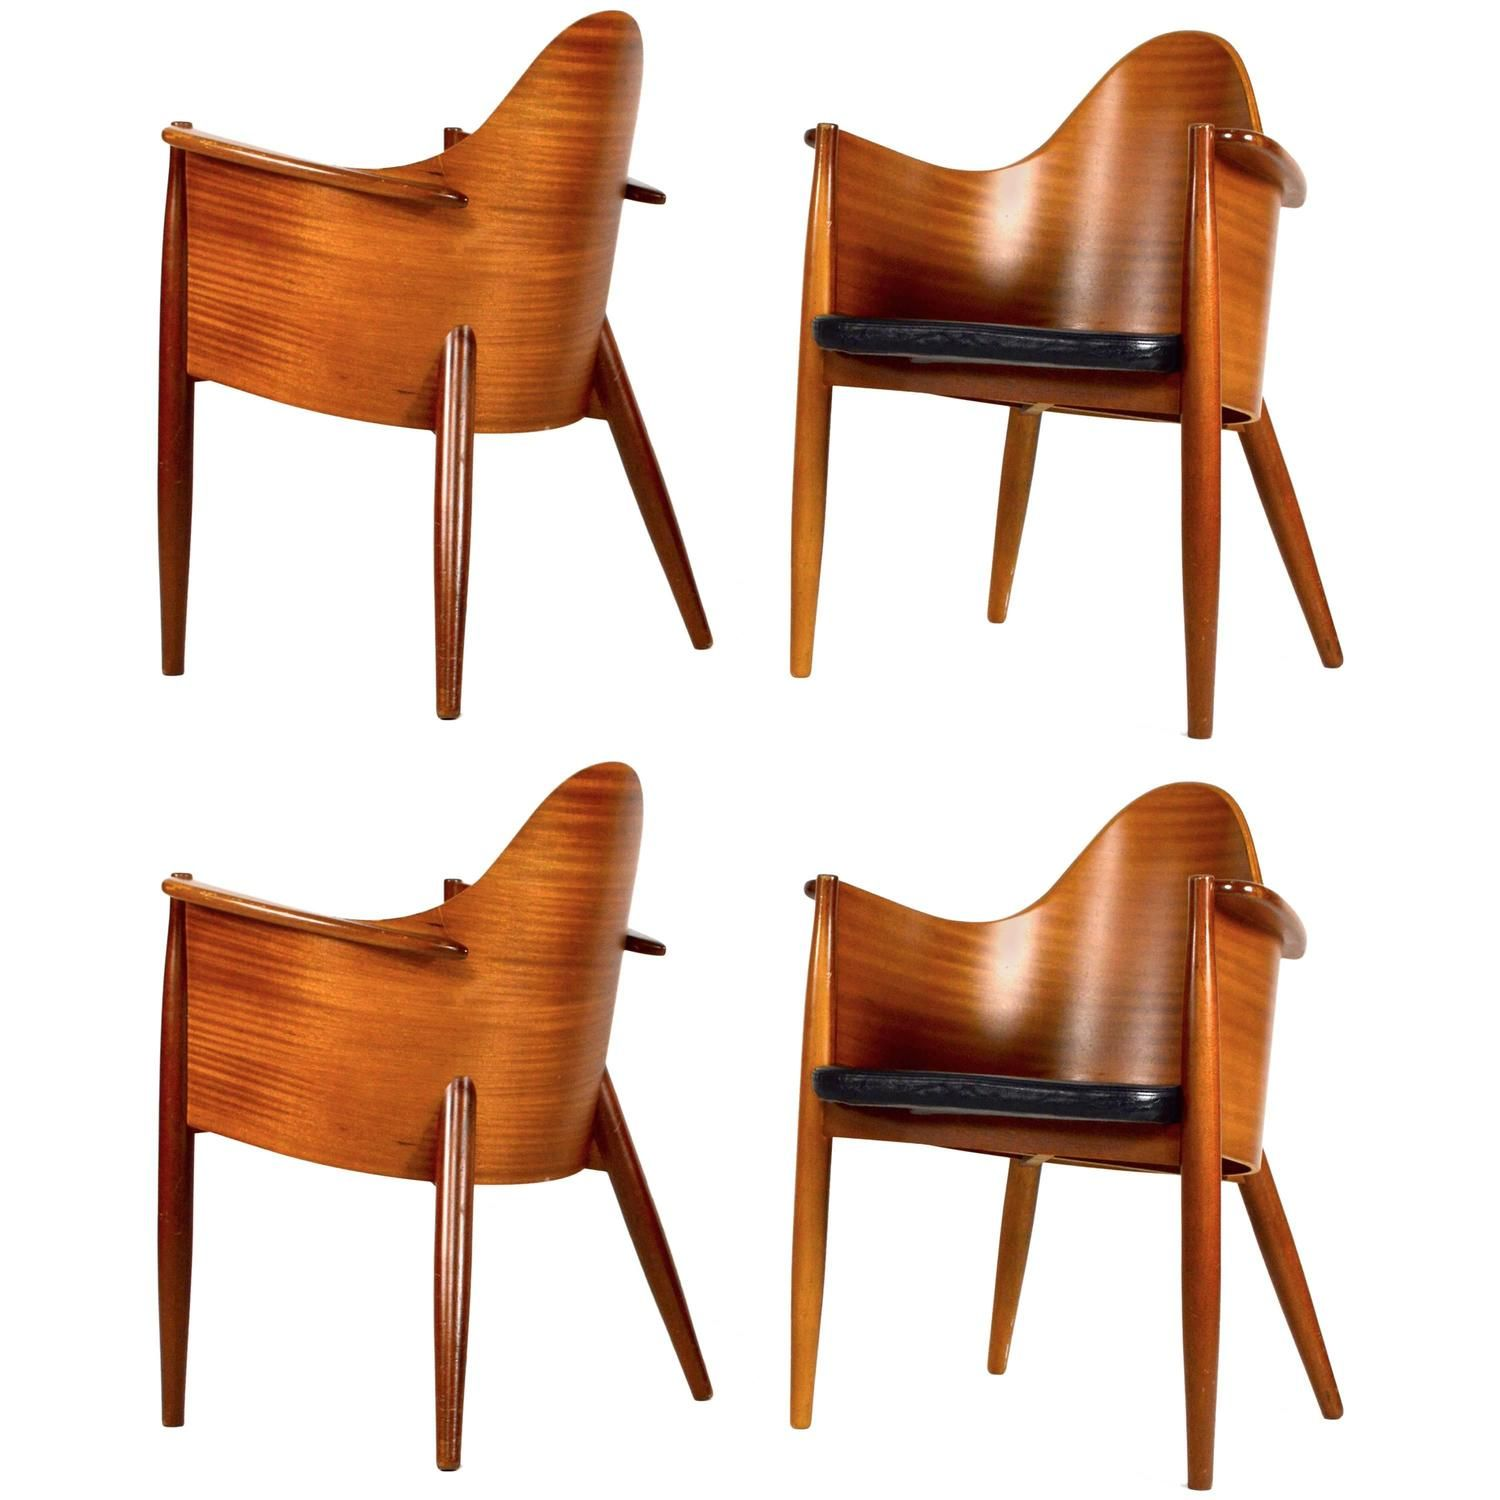 Very Rare Set Of 4 Scandinavian Teak Plywood Leather Side Chairs